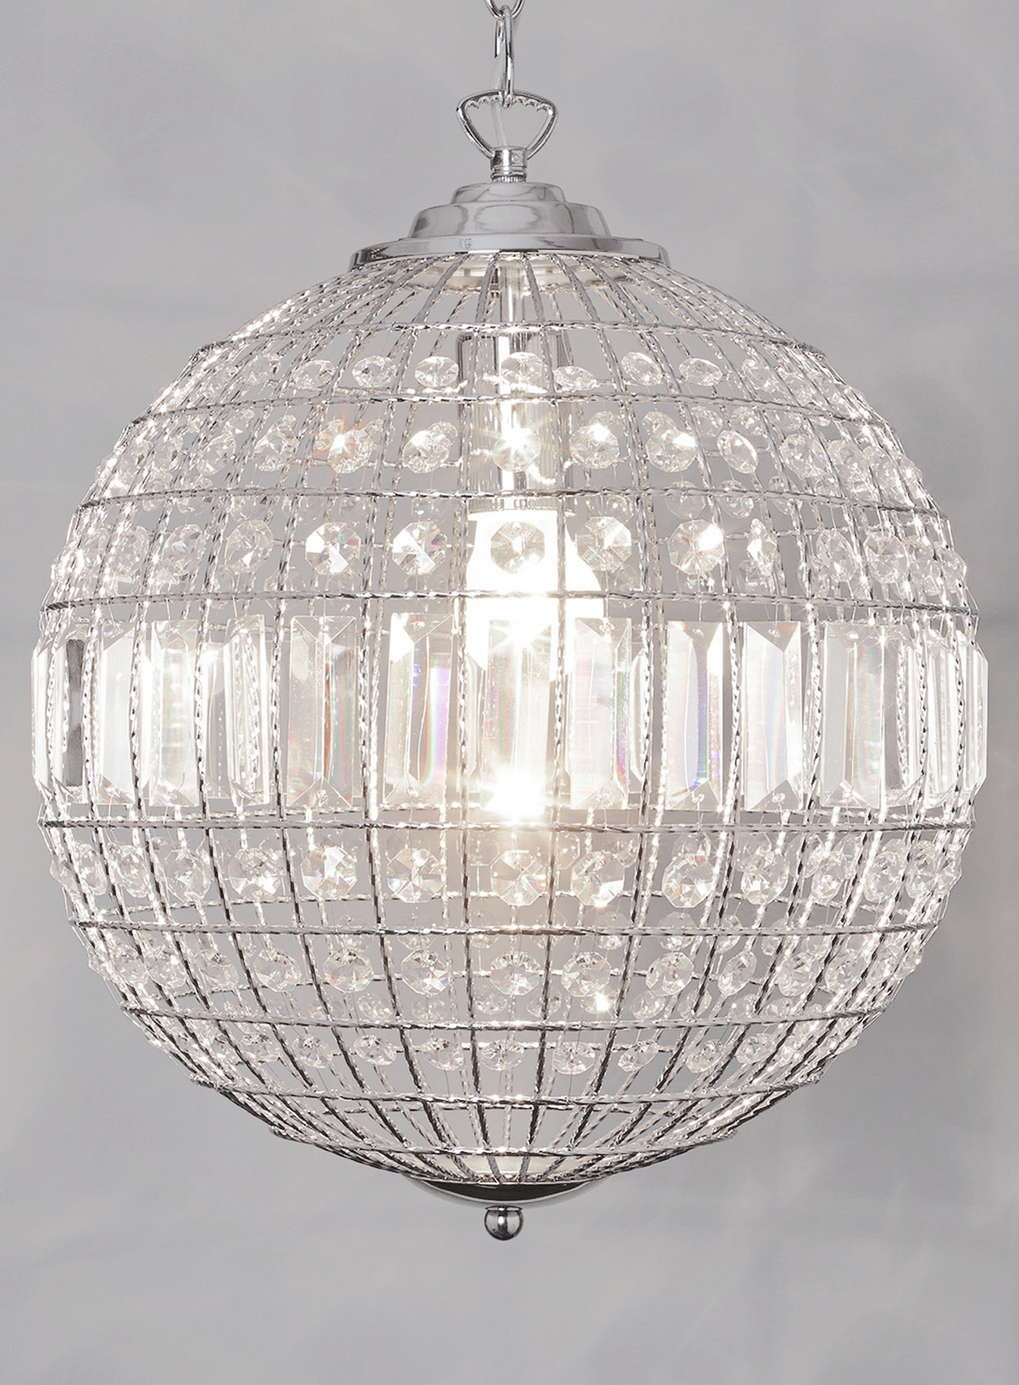 Crystal Globe Pendant Light Roselawnlutheran In Crystal Globe Chandelier (Image 10 of 15)